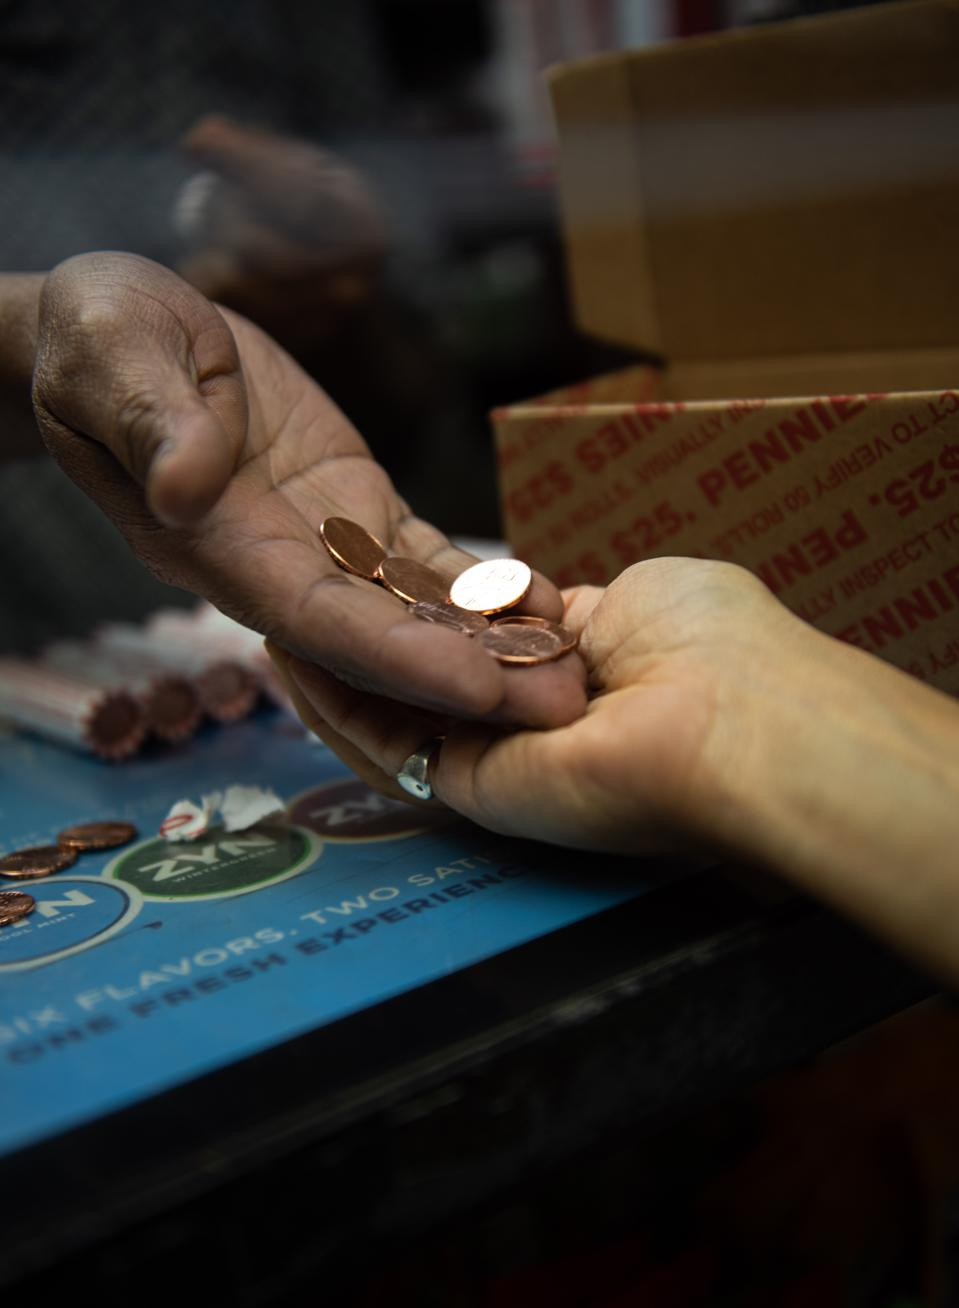 Hands exchanging pennies at a bodega